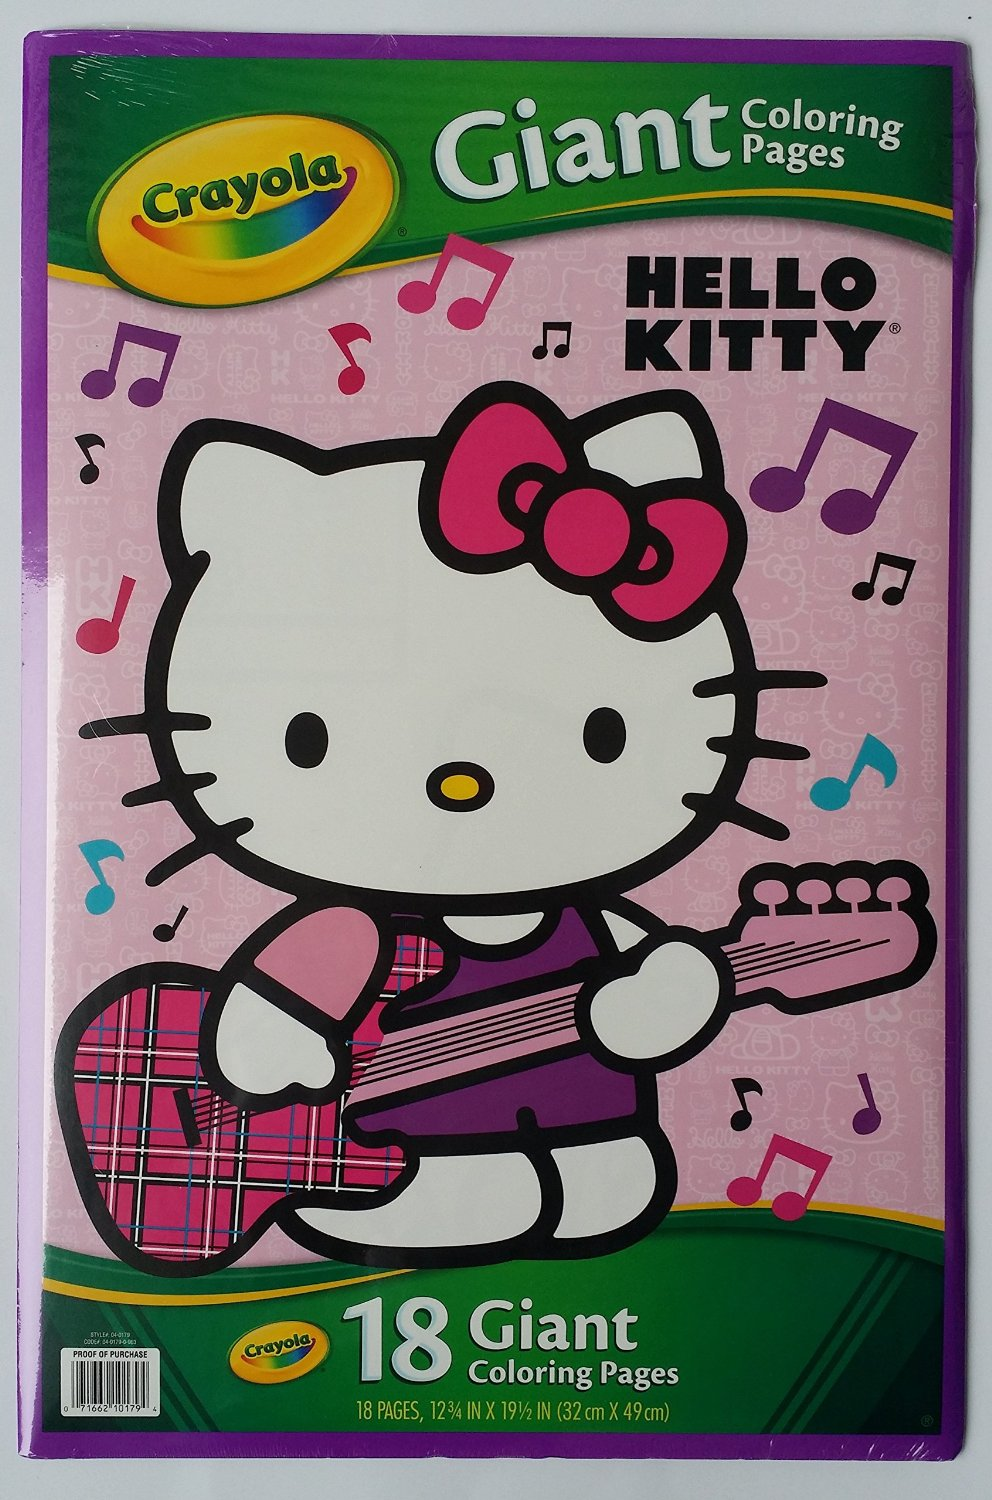 Crayola Hello Kitty Giant Coloring Pages Book 04 0179